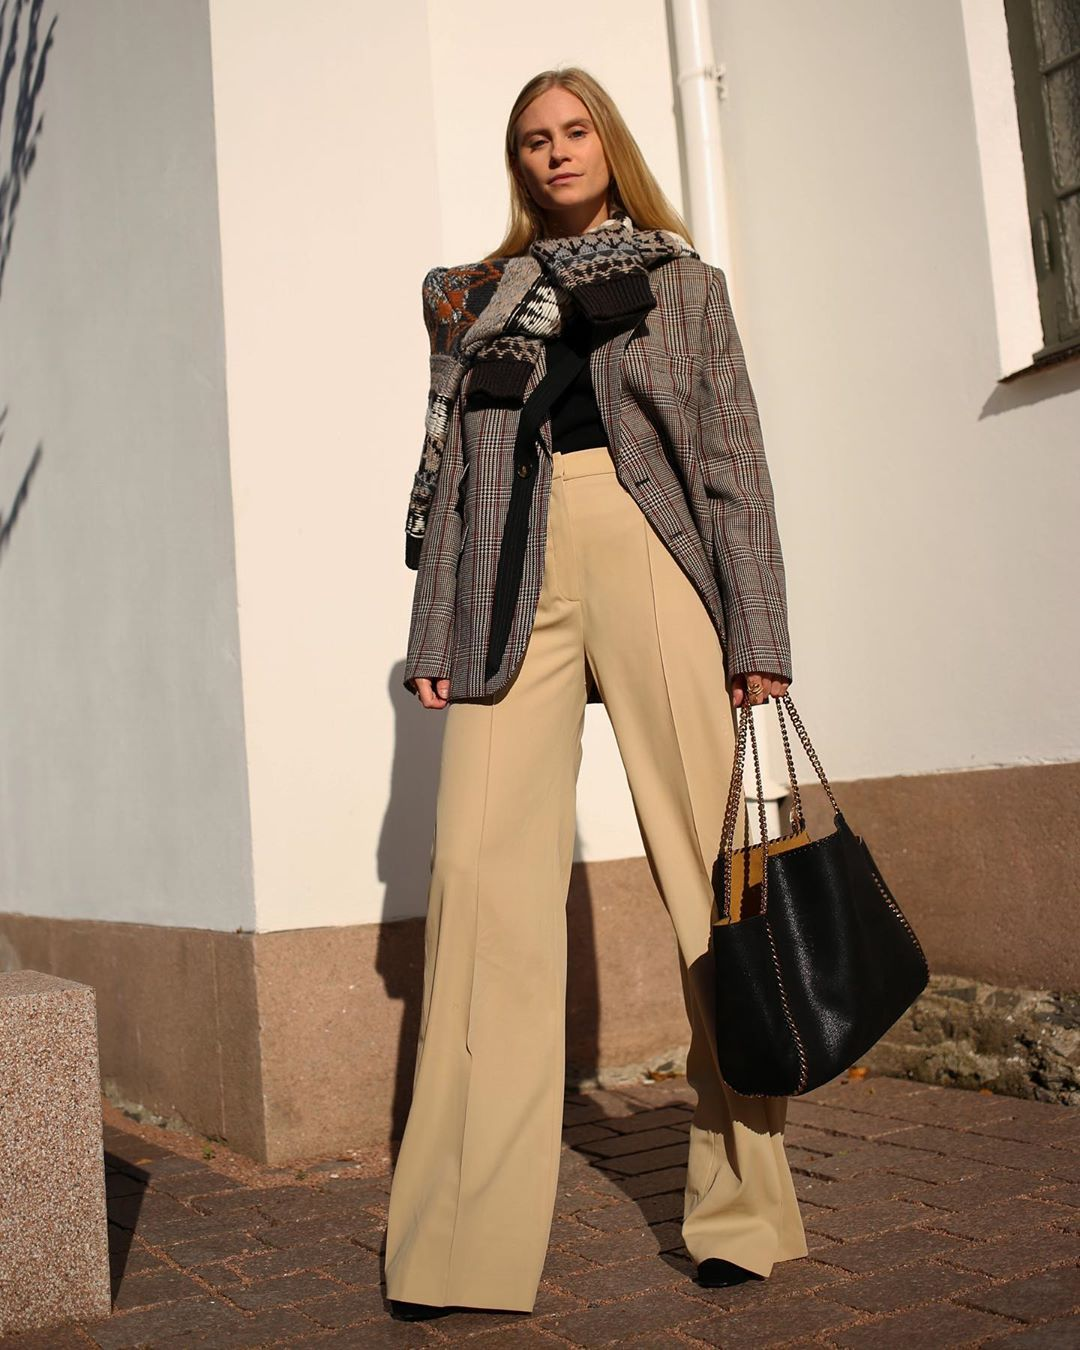 tine-andrea-stella-mccartney-fall-2019-look-instagram